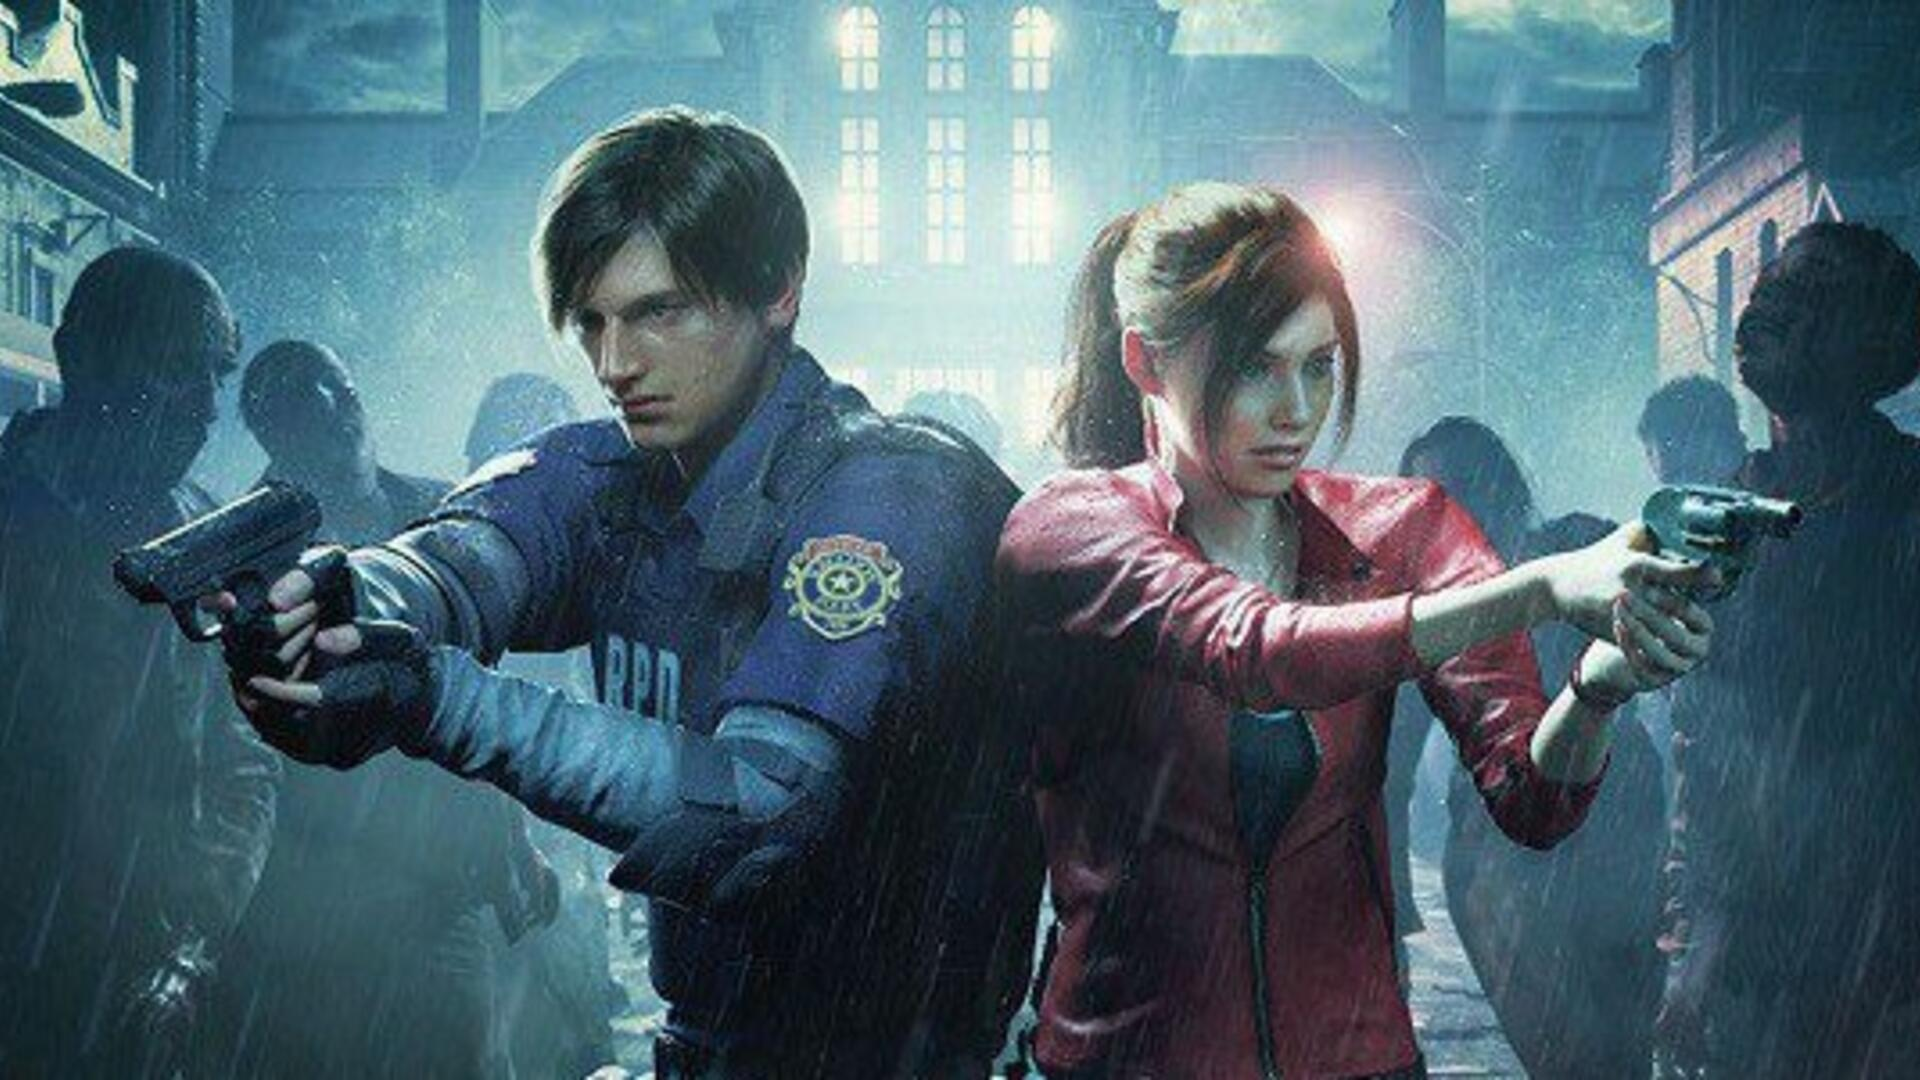 Resident Evil 2 Birkin Boss - Defeat William Birkin Sewers Boss in